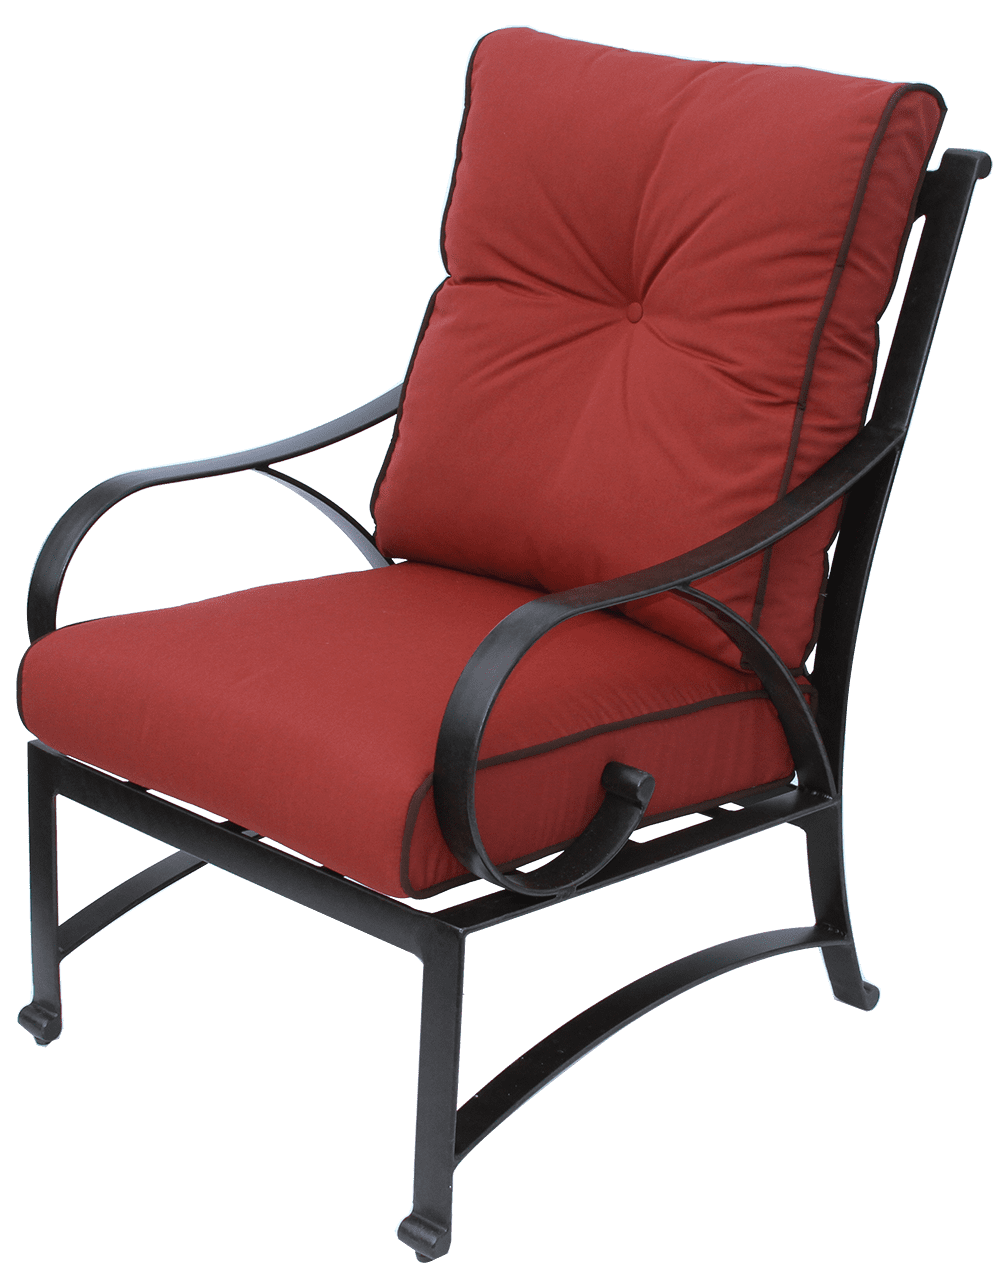 Newport Cast Aluminum Outdoor Patio Dining Chair With ...